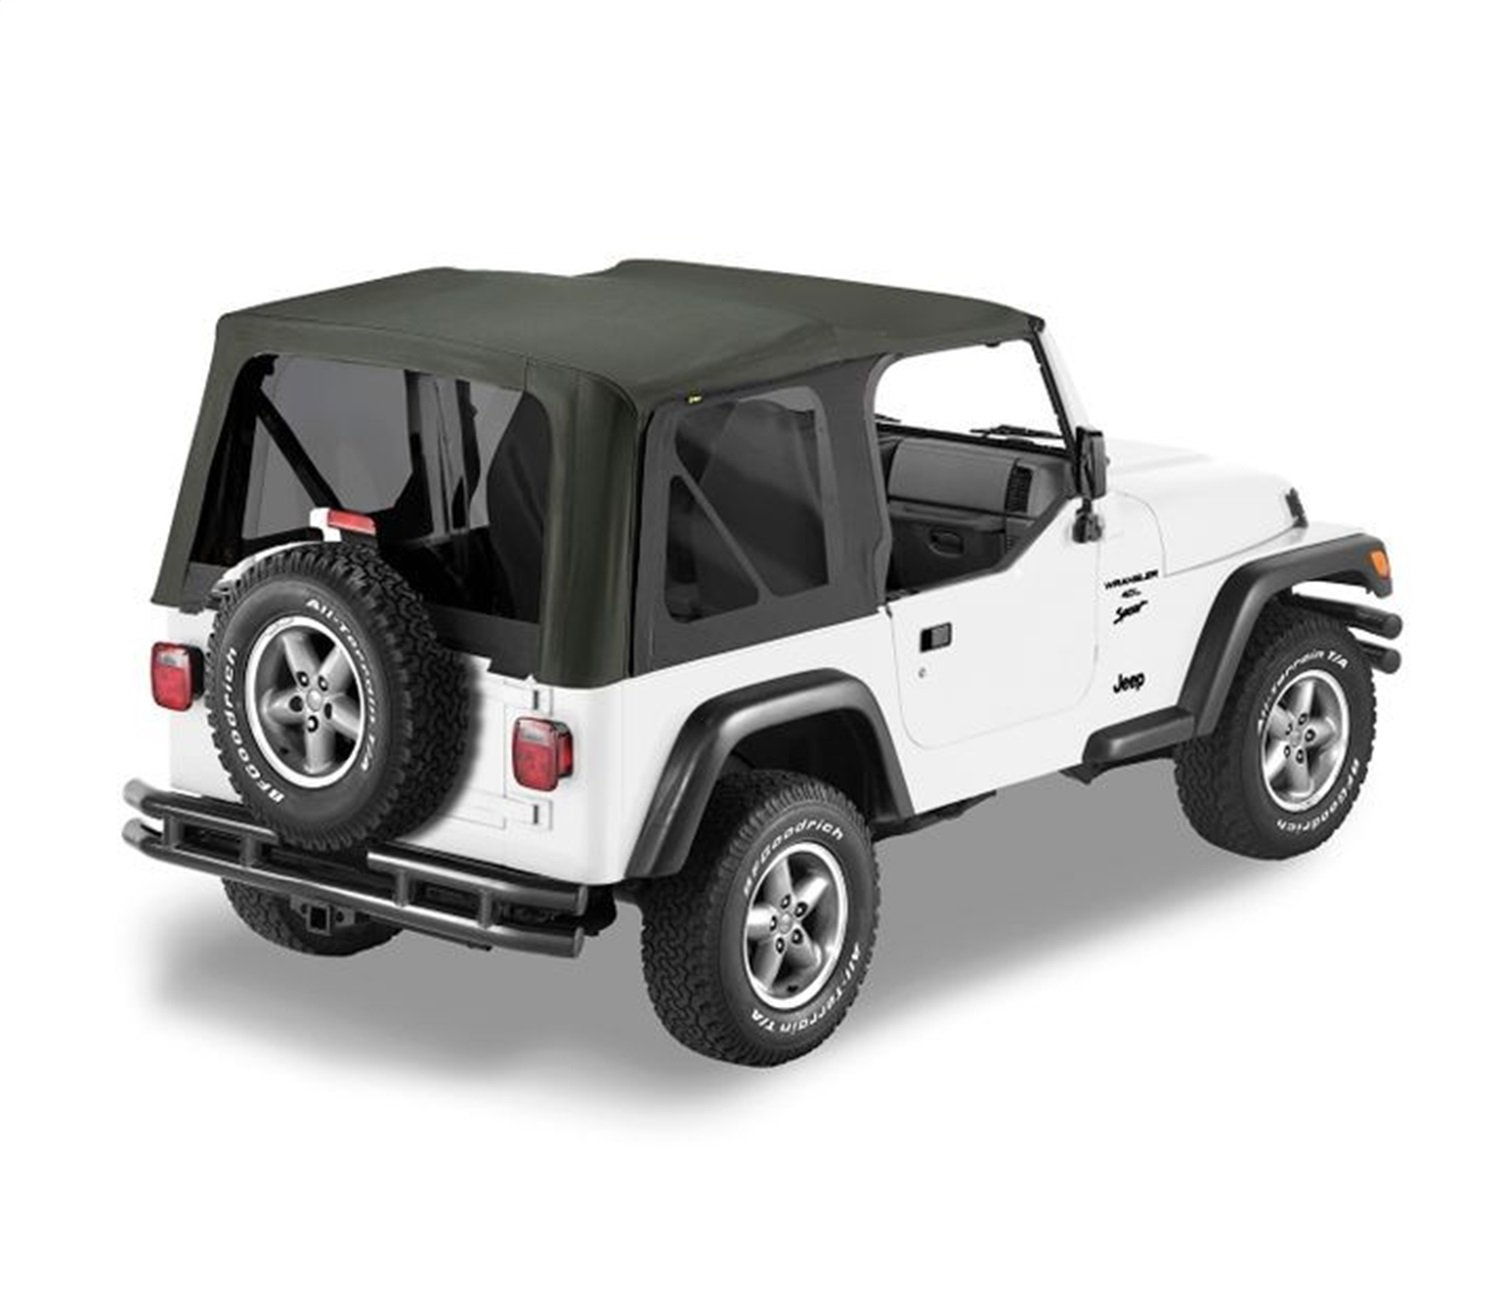 Bestop 79139-01 Black Sailcloth Replace-A-Top Soft Top with Tinted Windows; no Door Skins Included for 1997-2002 Wrangler TJ